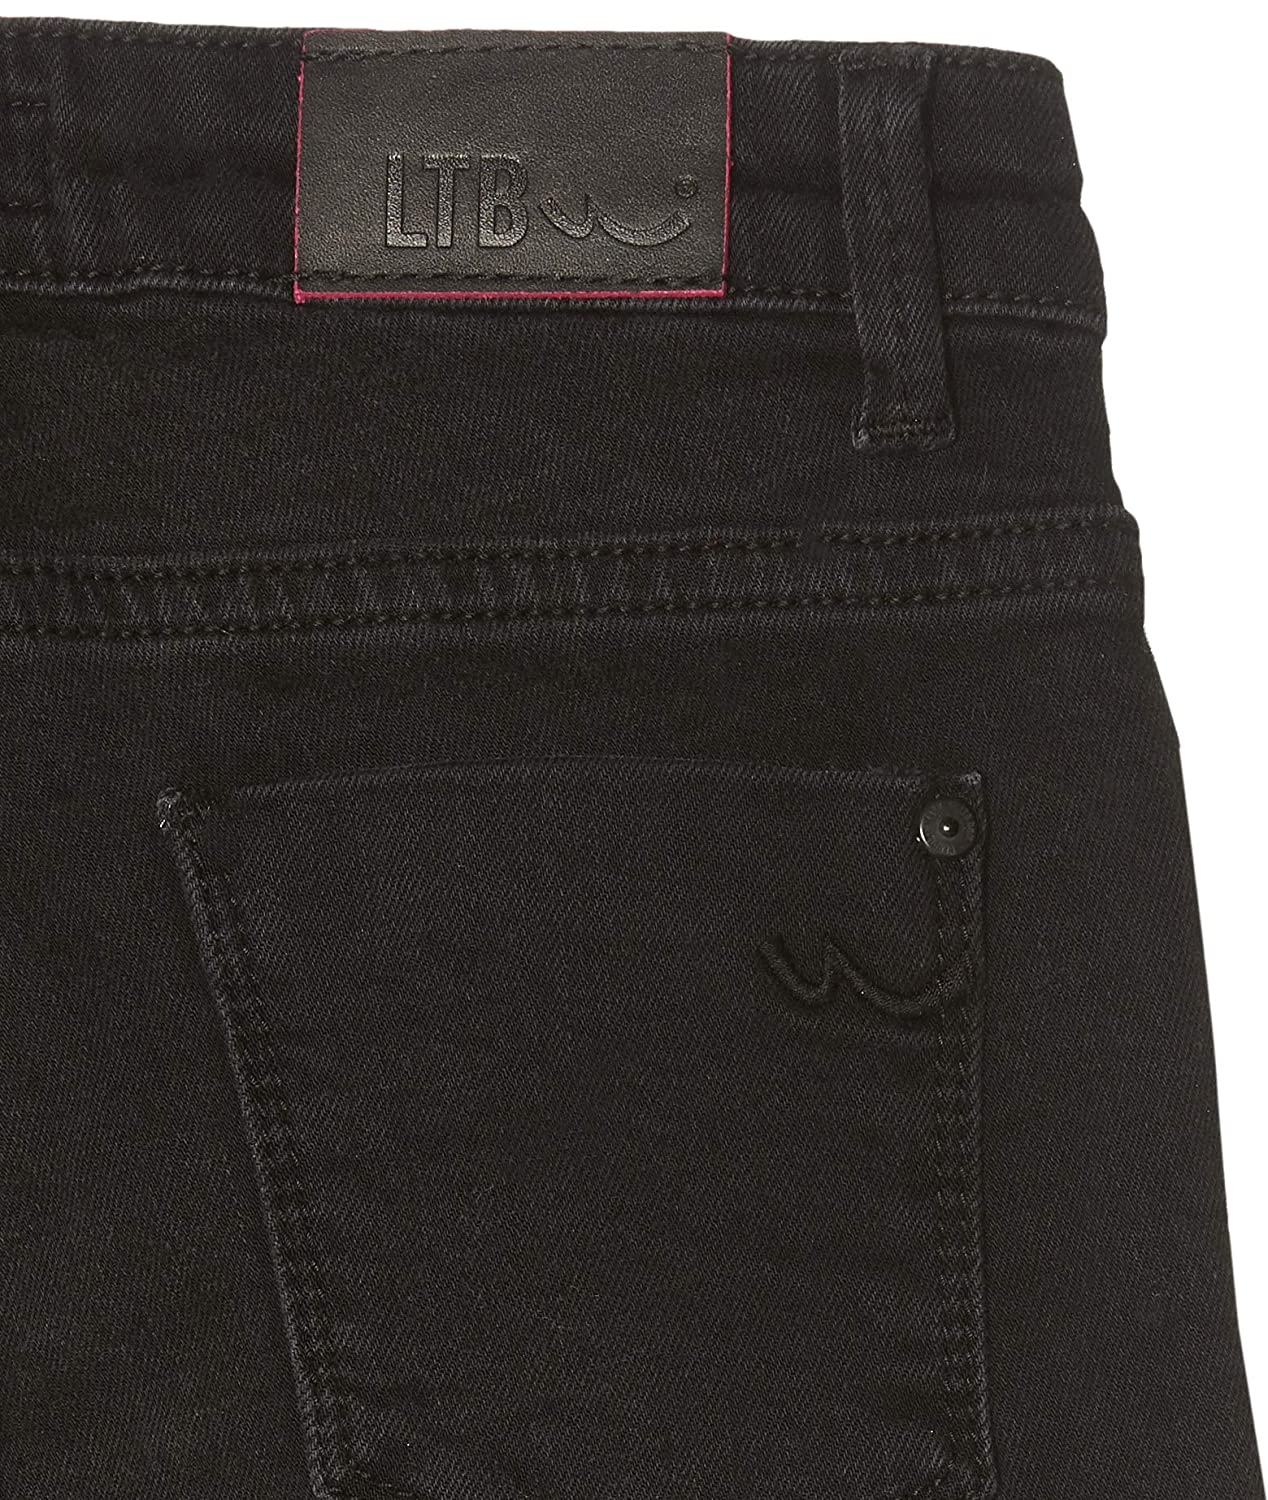 LTB Jeans Celly G Jeans Fille